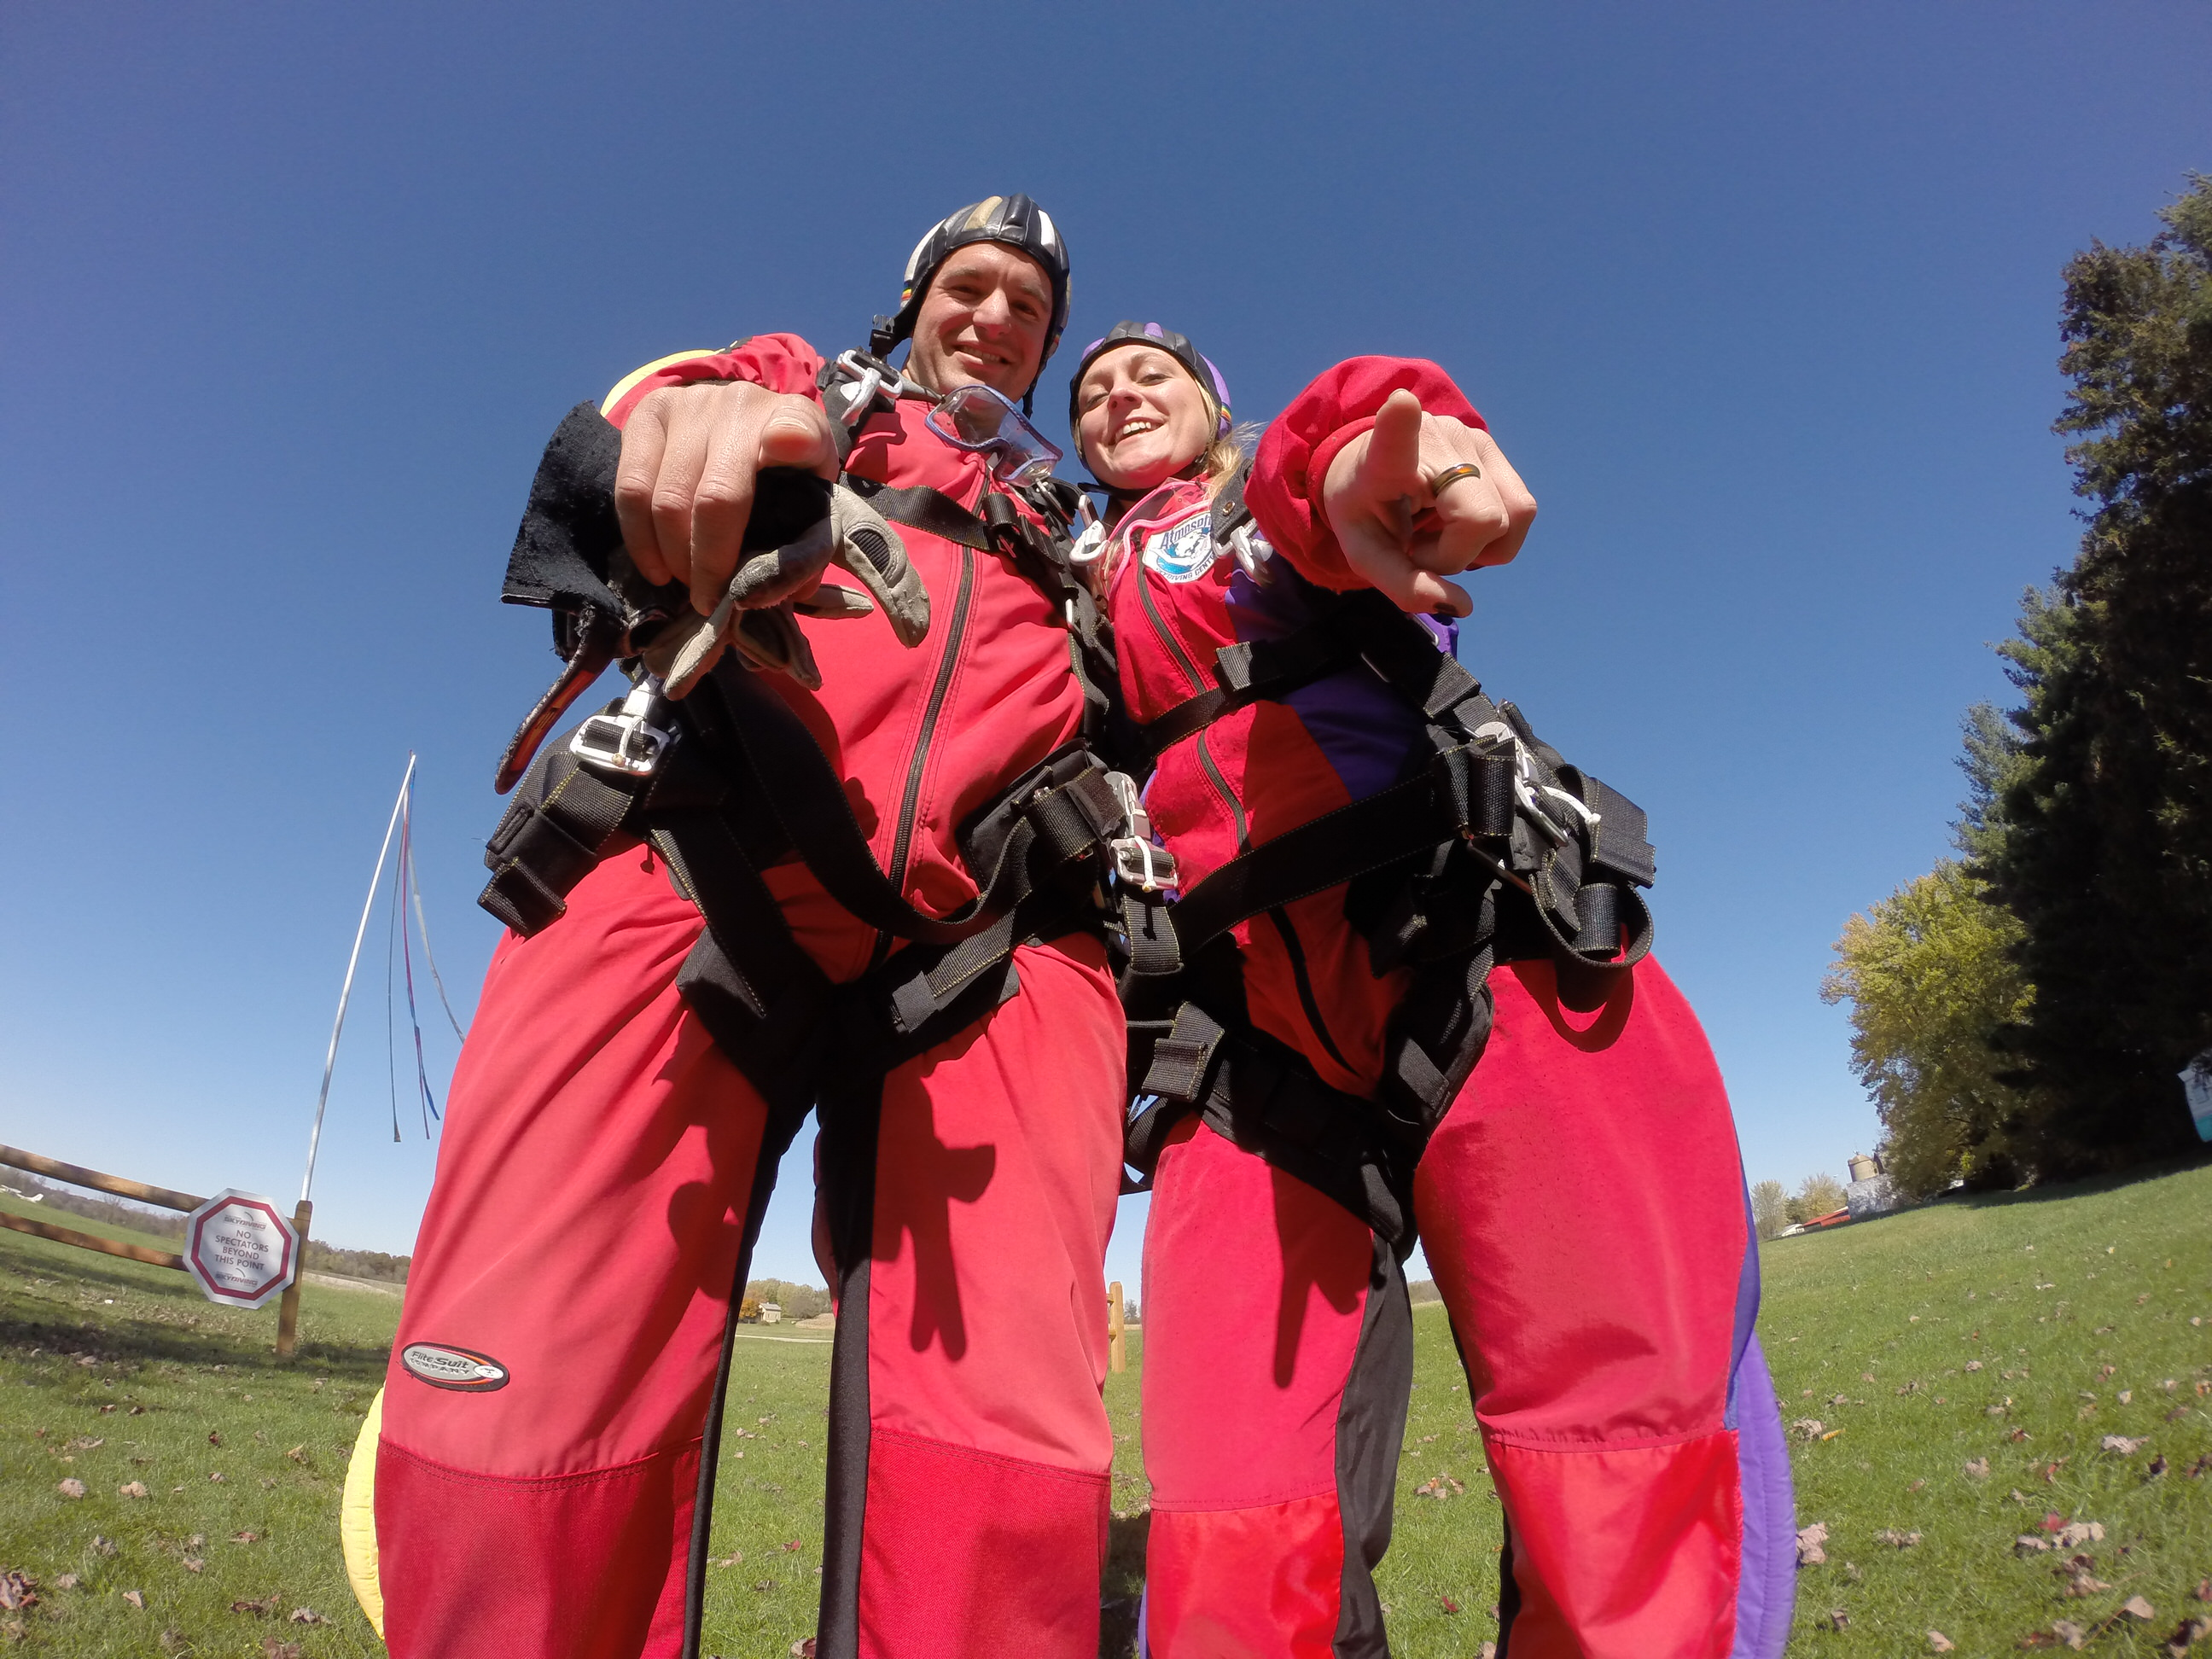 Couple preparing to safely risk skydiving at Wisconsin Skydiving Center near Chicago